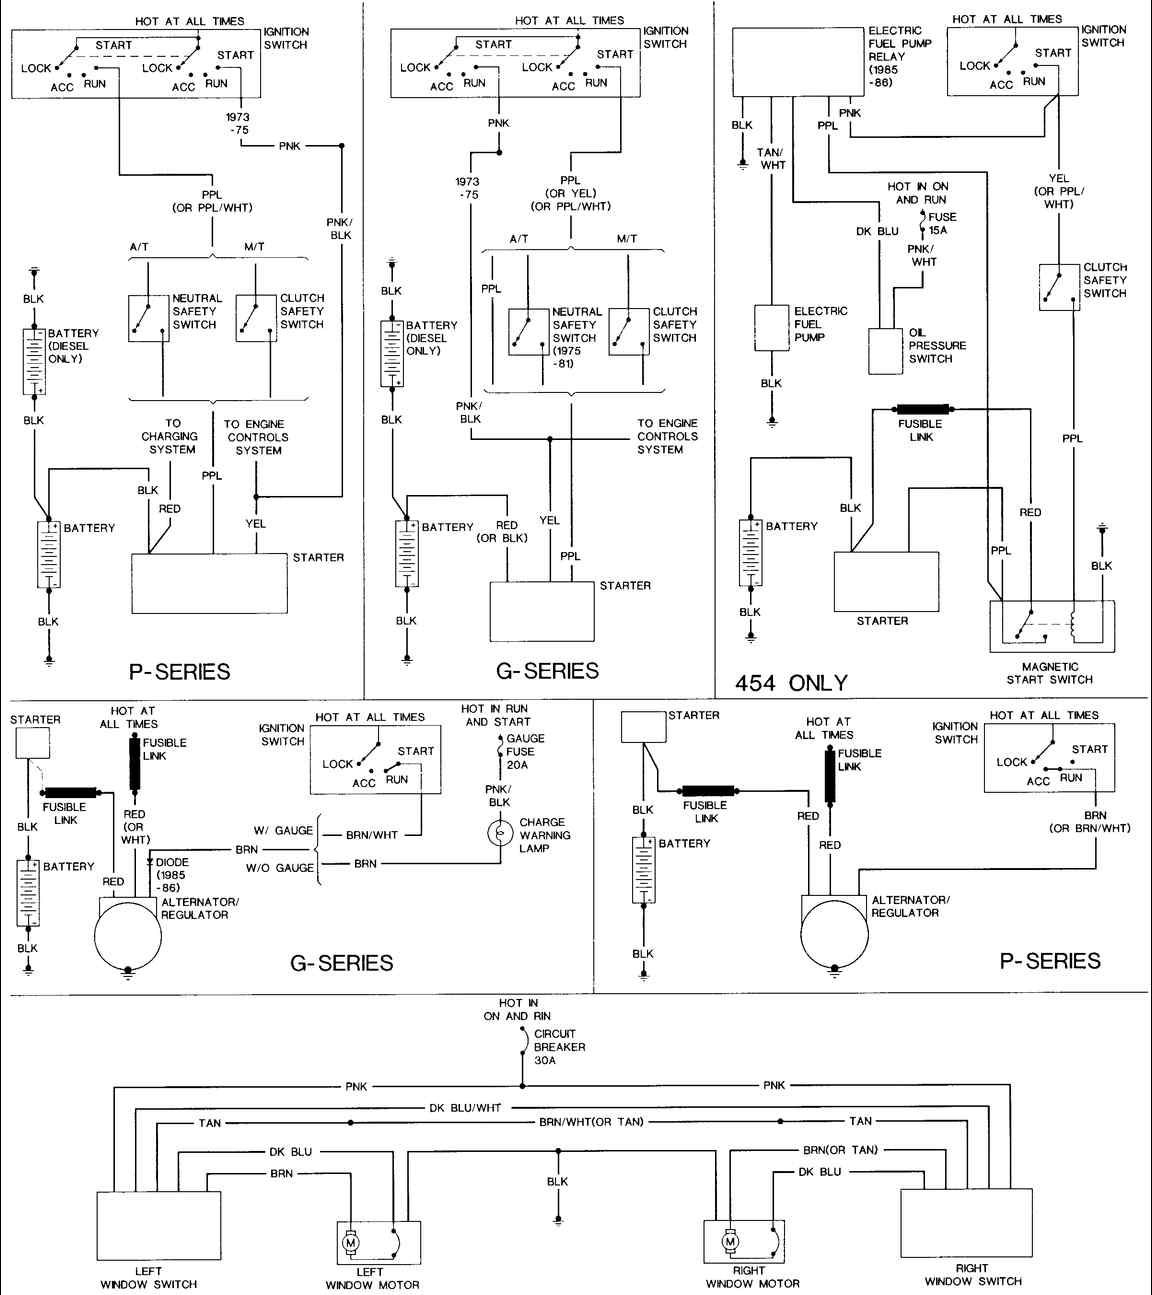 white volvo truck wiring diagram 1994 1986 chevy truck wiring diagram model c - schematic wiring ... 1986 white truck wiring diagram